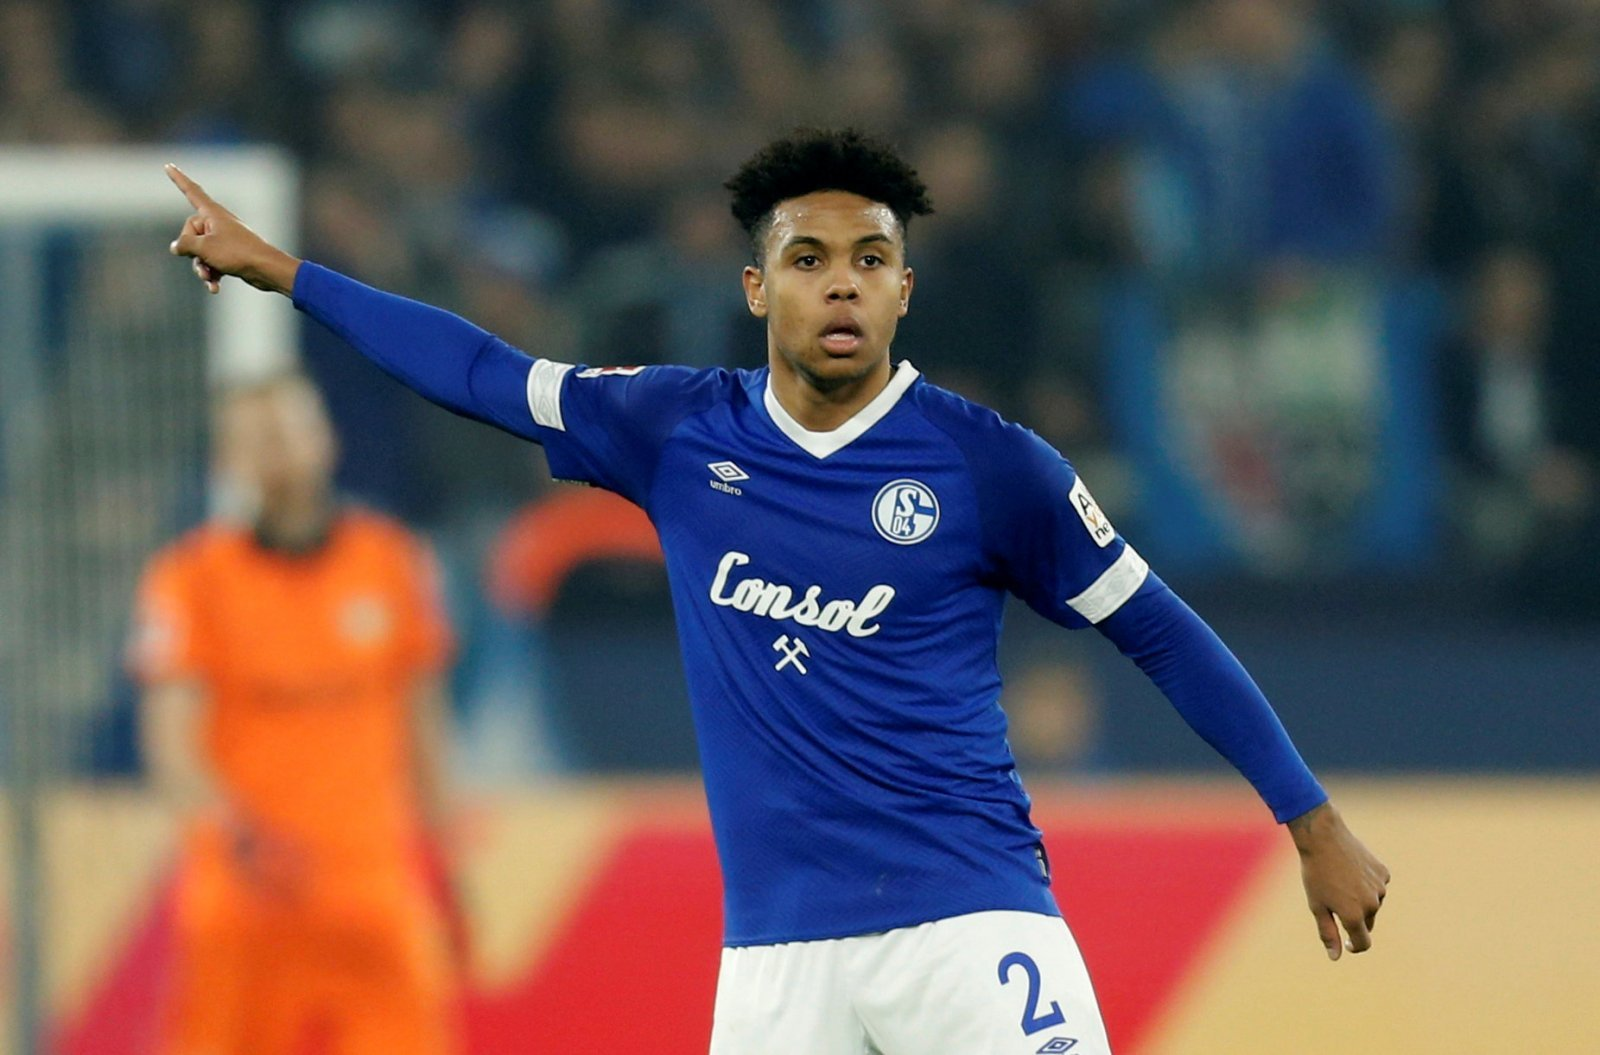 Weston McKennie needs to end up at Arsenal and not Liverpool